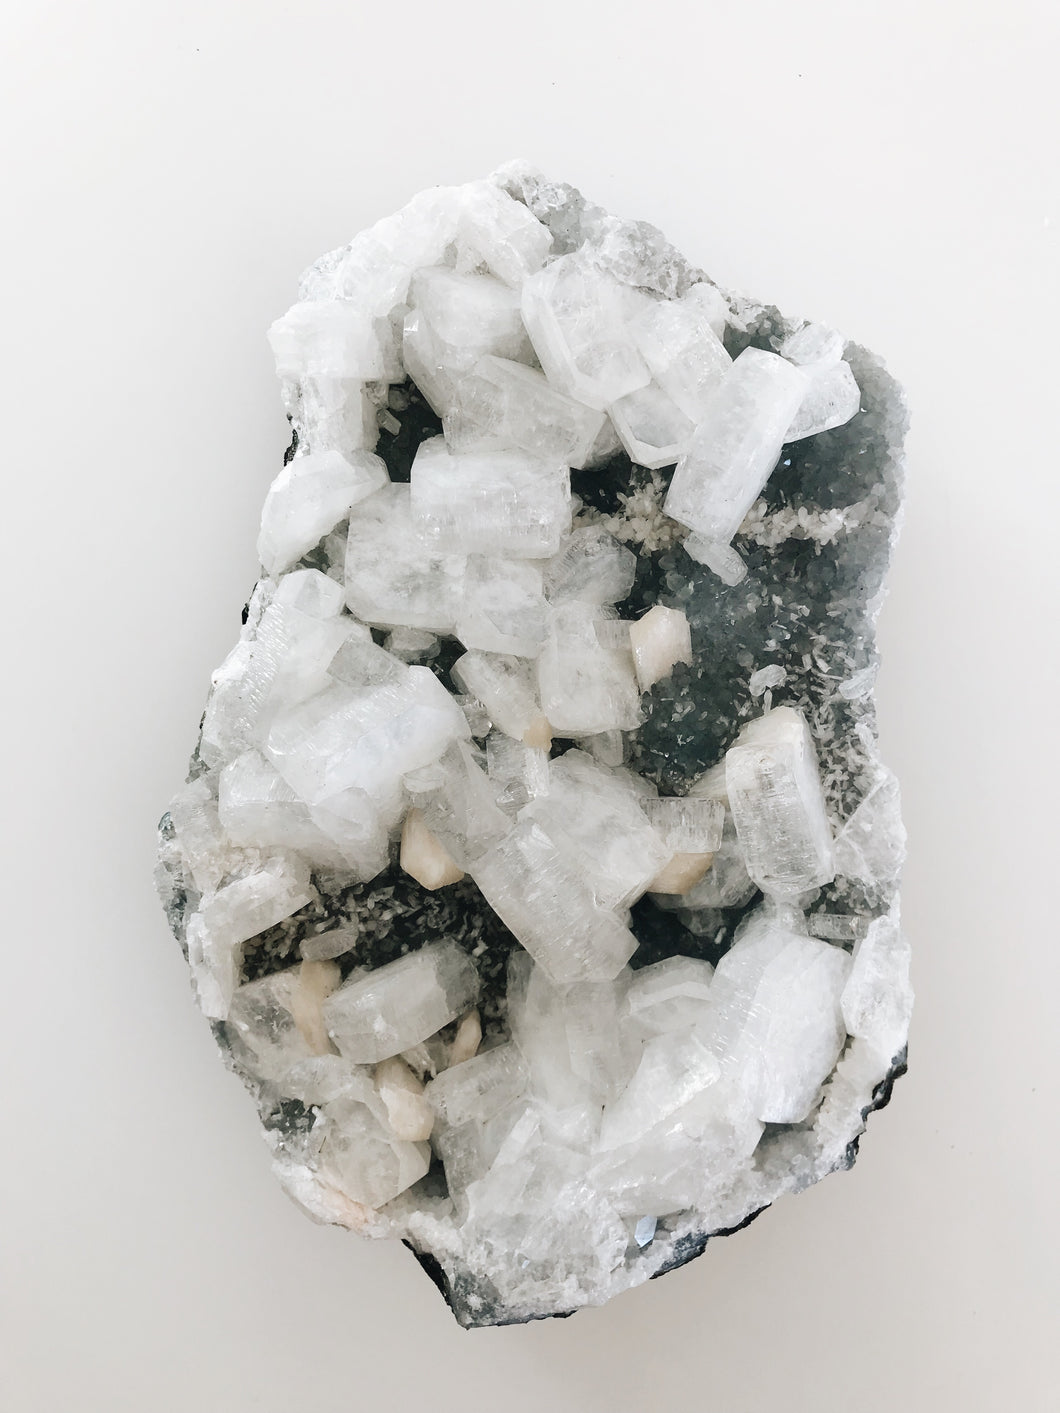 large white gray apophyllite crystal rock